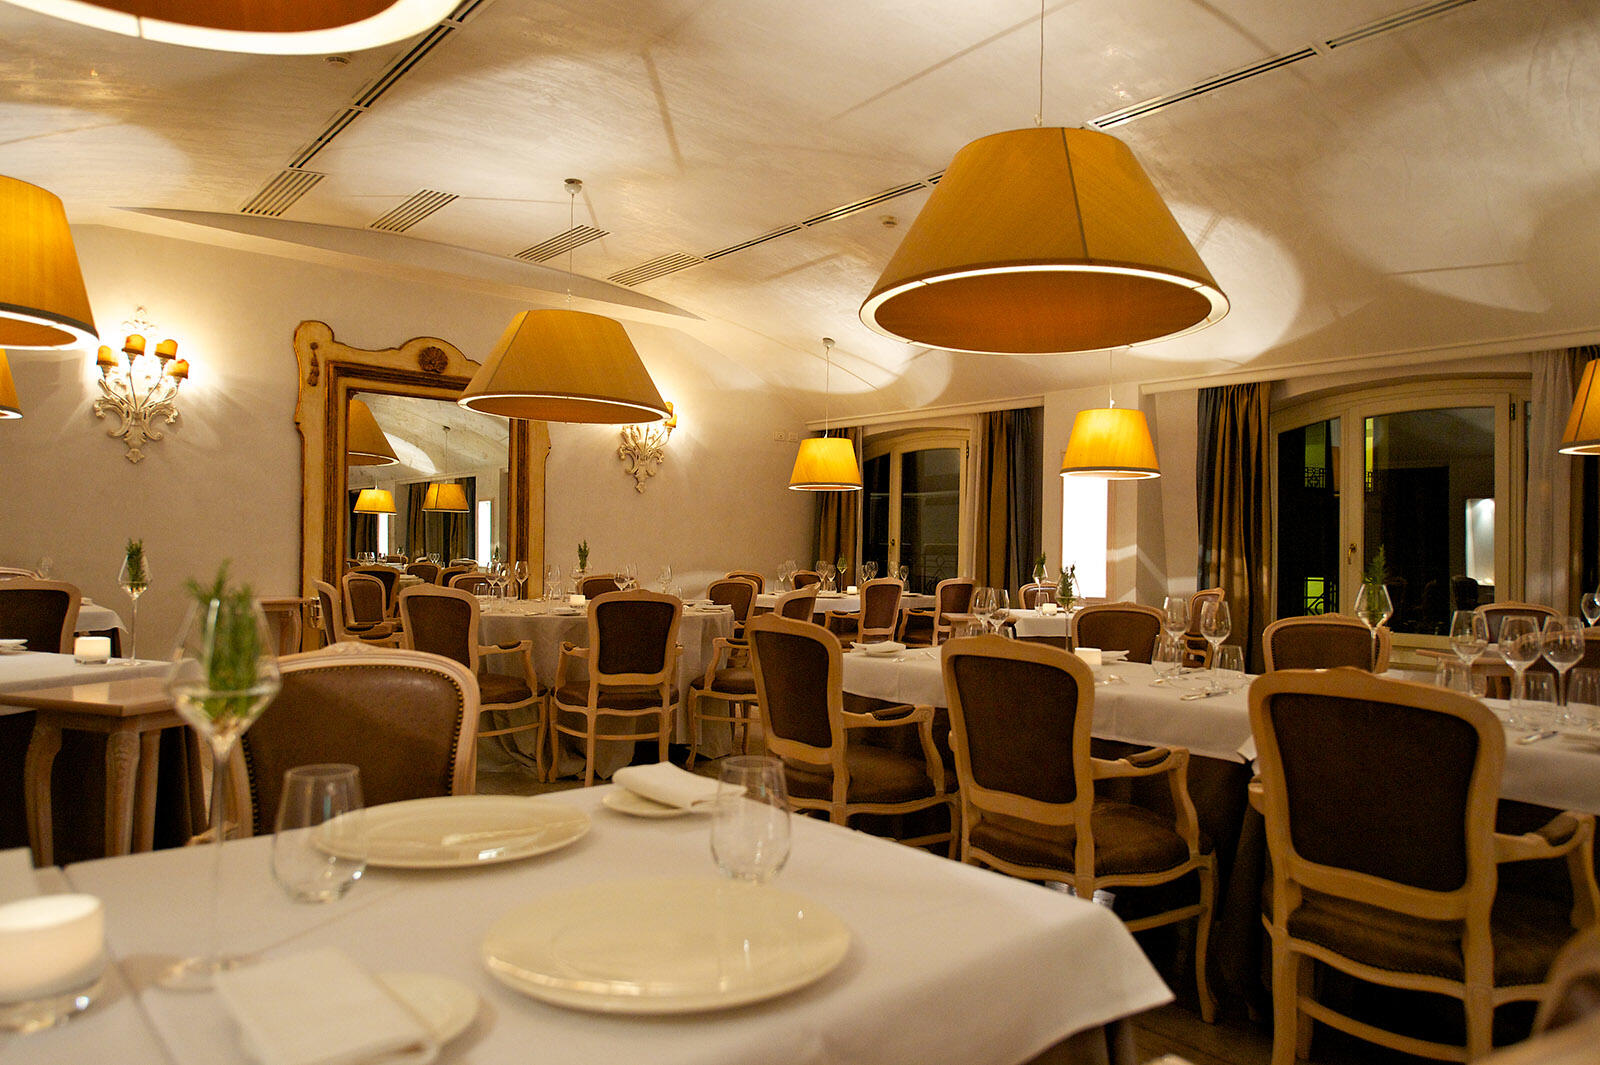 Restaurant at Grand Visconti Palace in Milan